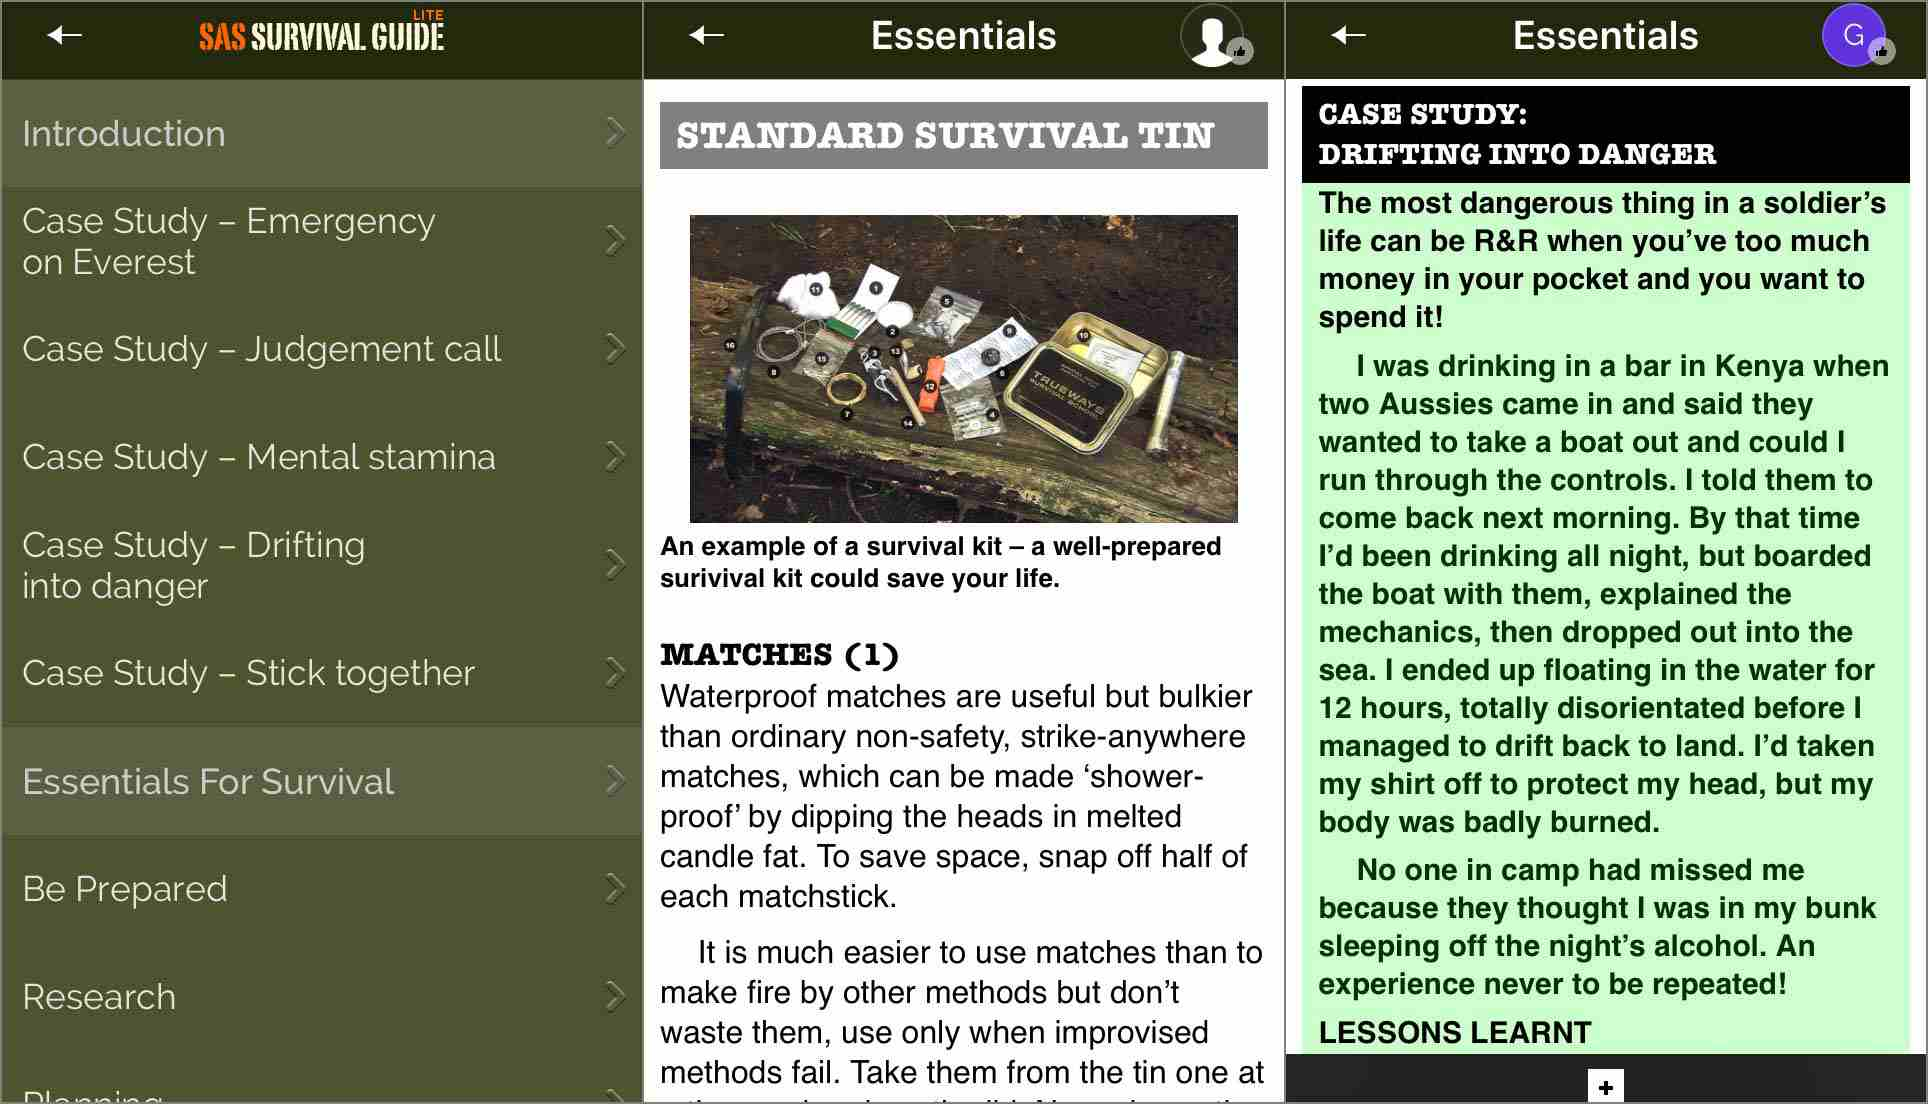 Screenshots of the SAS Survival Guide iPhone app